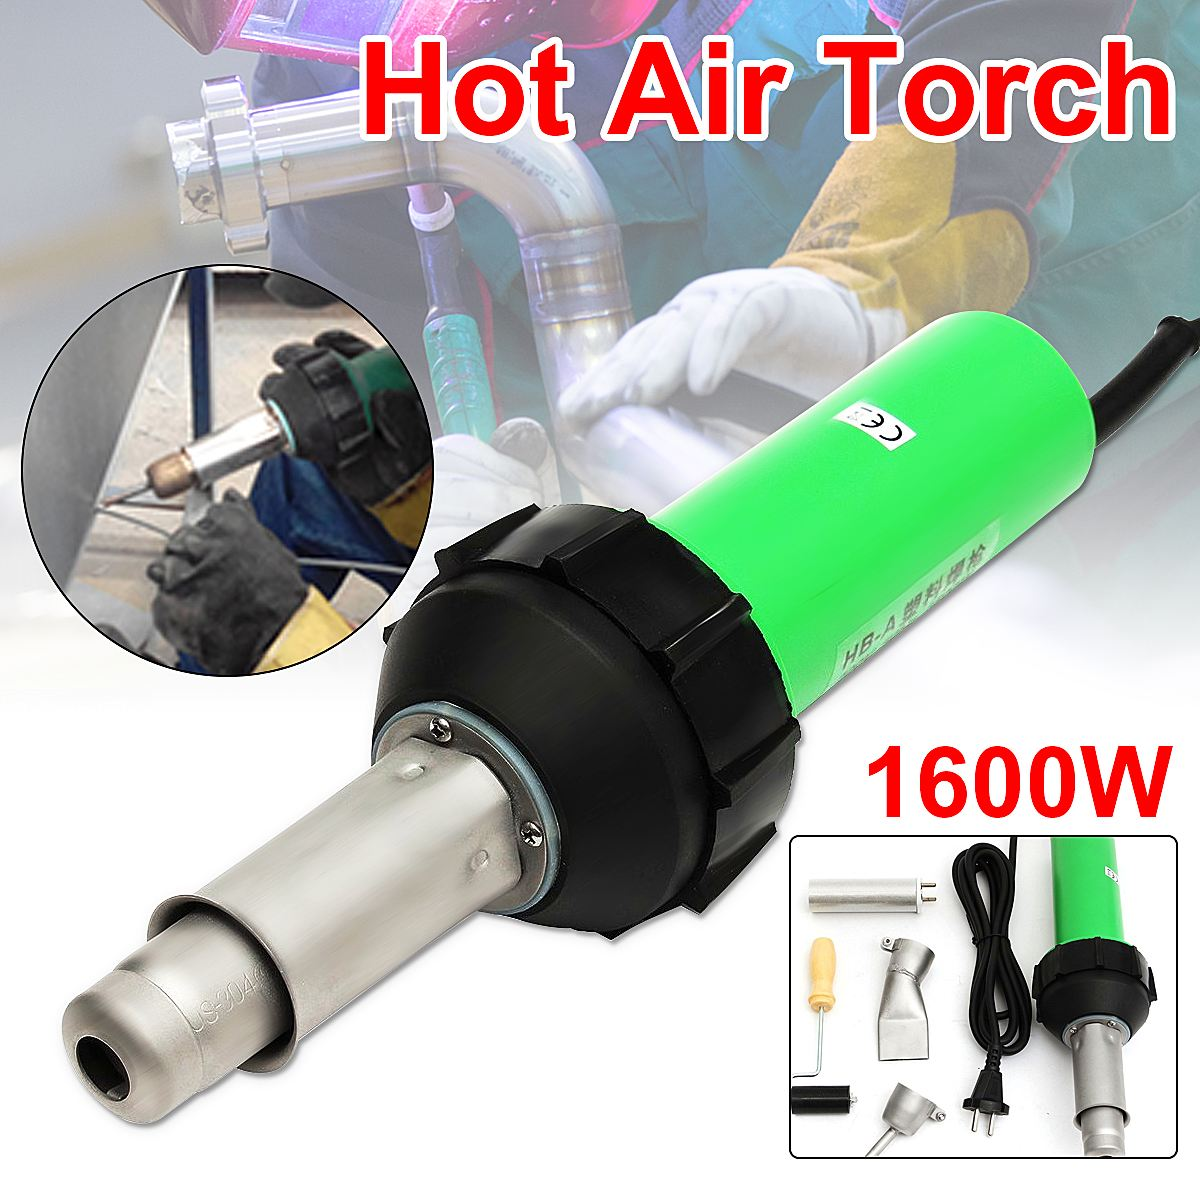 High Quality 220V 1600W 50Hz Electronic Heat Hot Air Torch Plastic Welding Welder Torch + Nozzle + Pressure Roller 3000Pa 2017 high quality taiwan bao ss 621h digital adjustable warm air gun electric blower proskit plastic welding torch free shipping